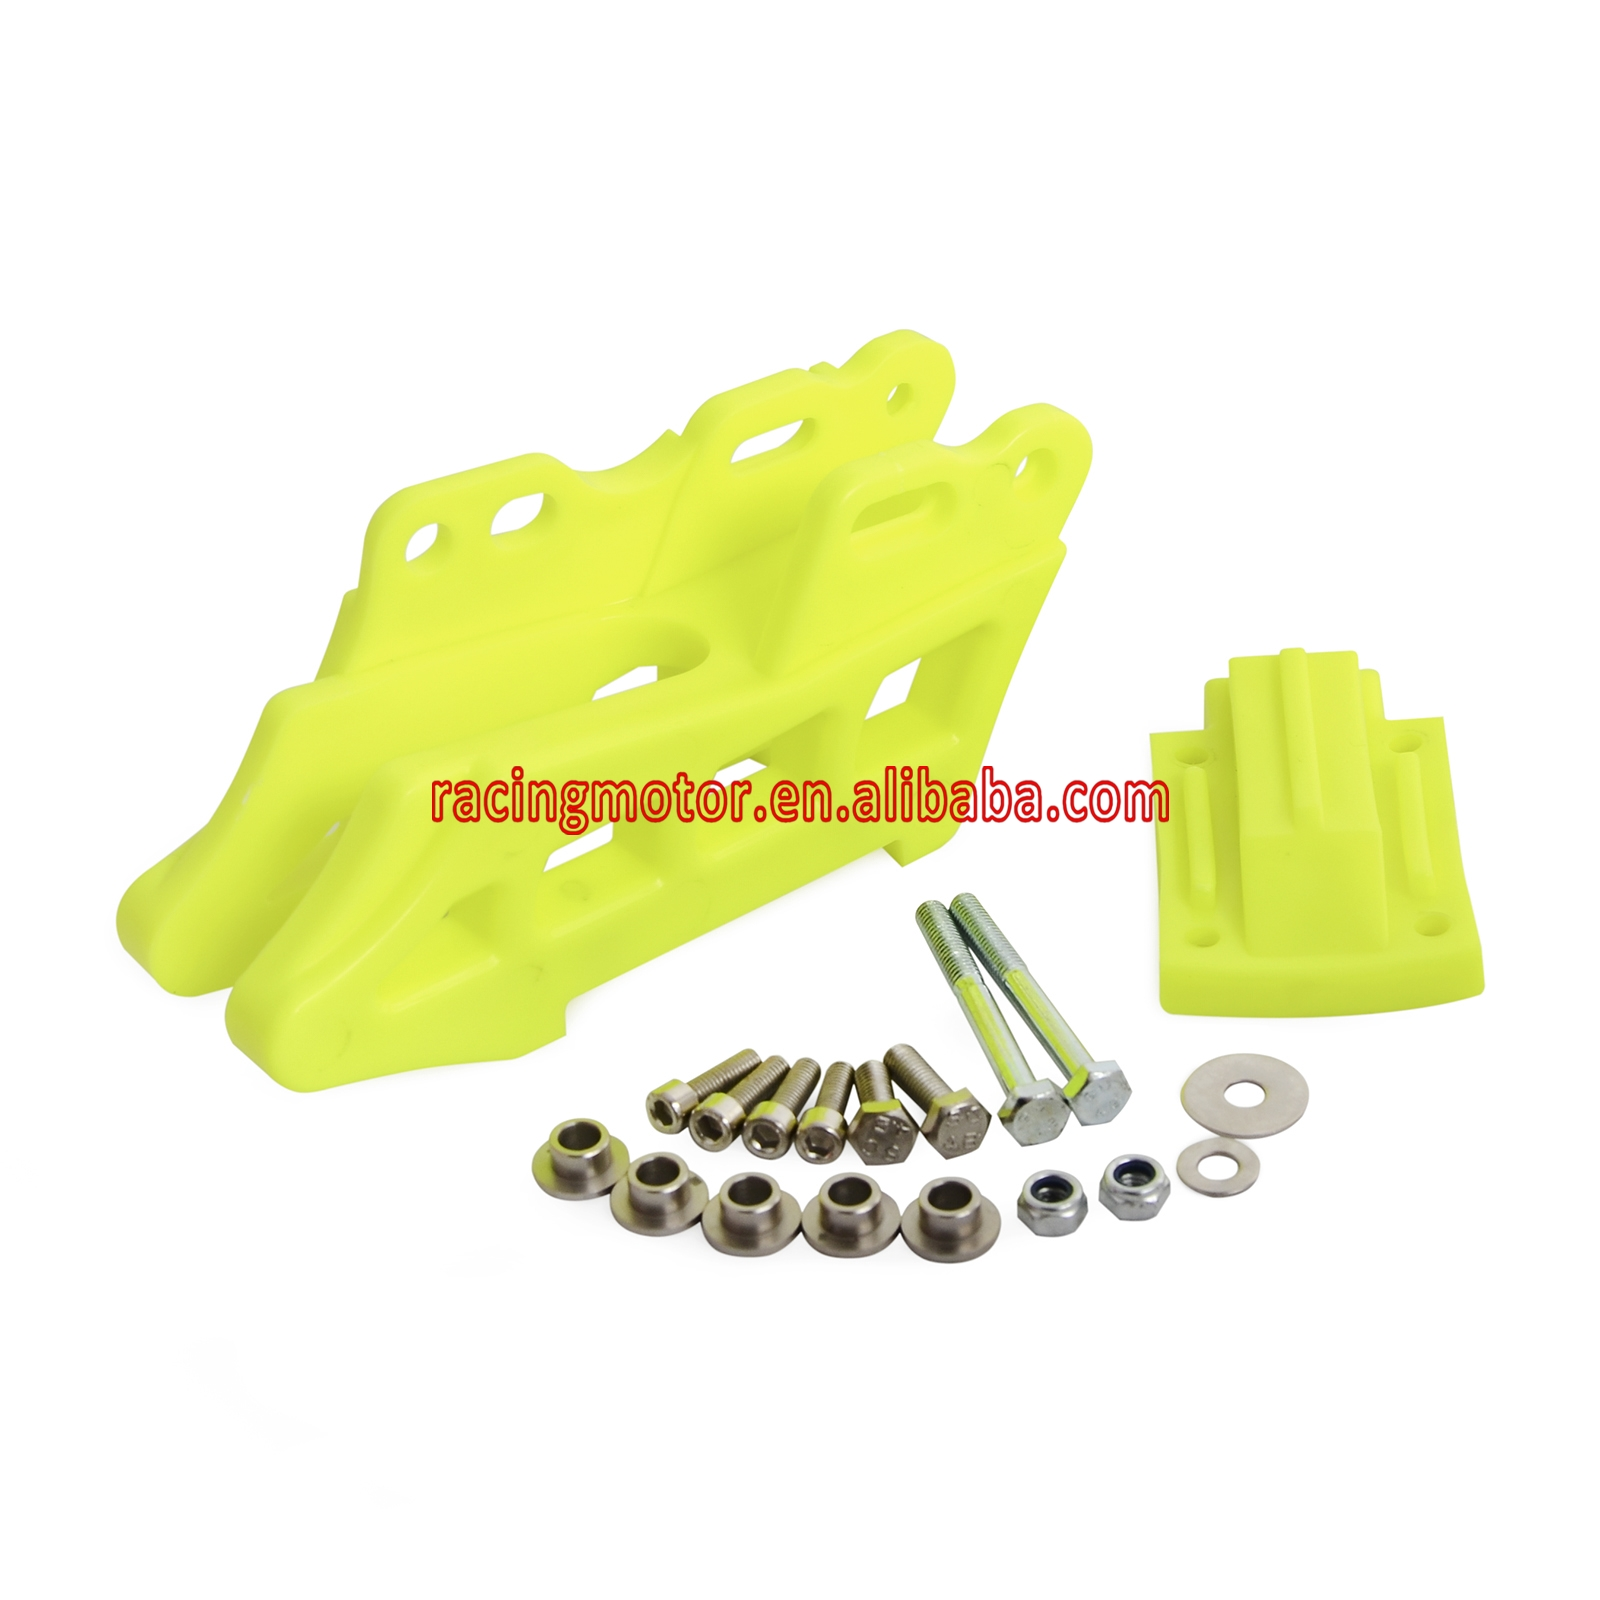 NICECNC Motorcycle Chain Guide Cover for Suzuki RM125 RM250 RMZ250 RMZ450 RMX450Z DRZ450S DRZ450R DRZ450SM 250SB 7 8 22mm gold handlebar handle tubes fat bar for suzuki dirt pit bike motorcycle rm125 rm250 rmz250 rmz450 rmx250 dr250 drz400